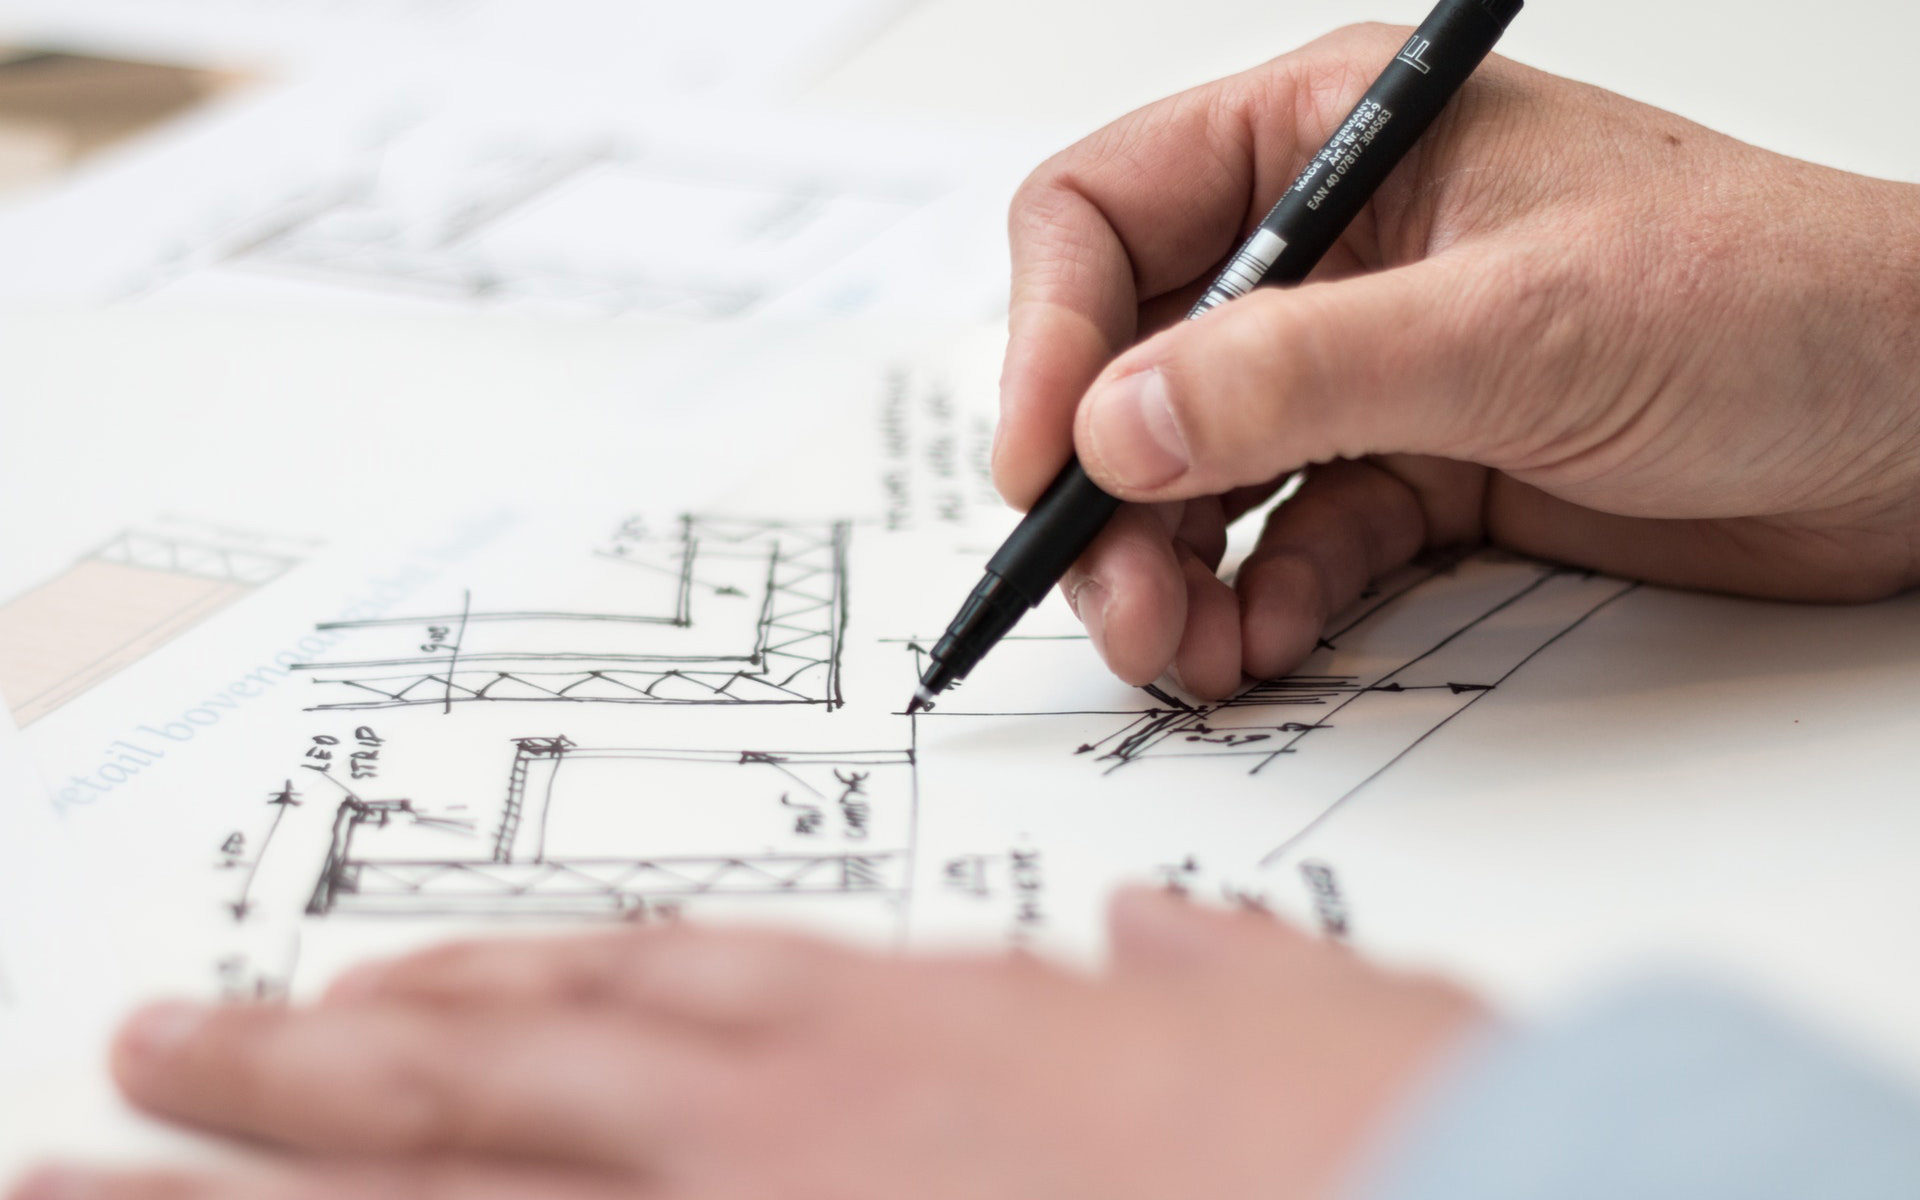 Pen and house blue prints